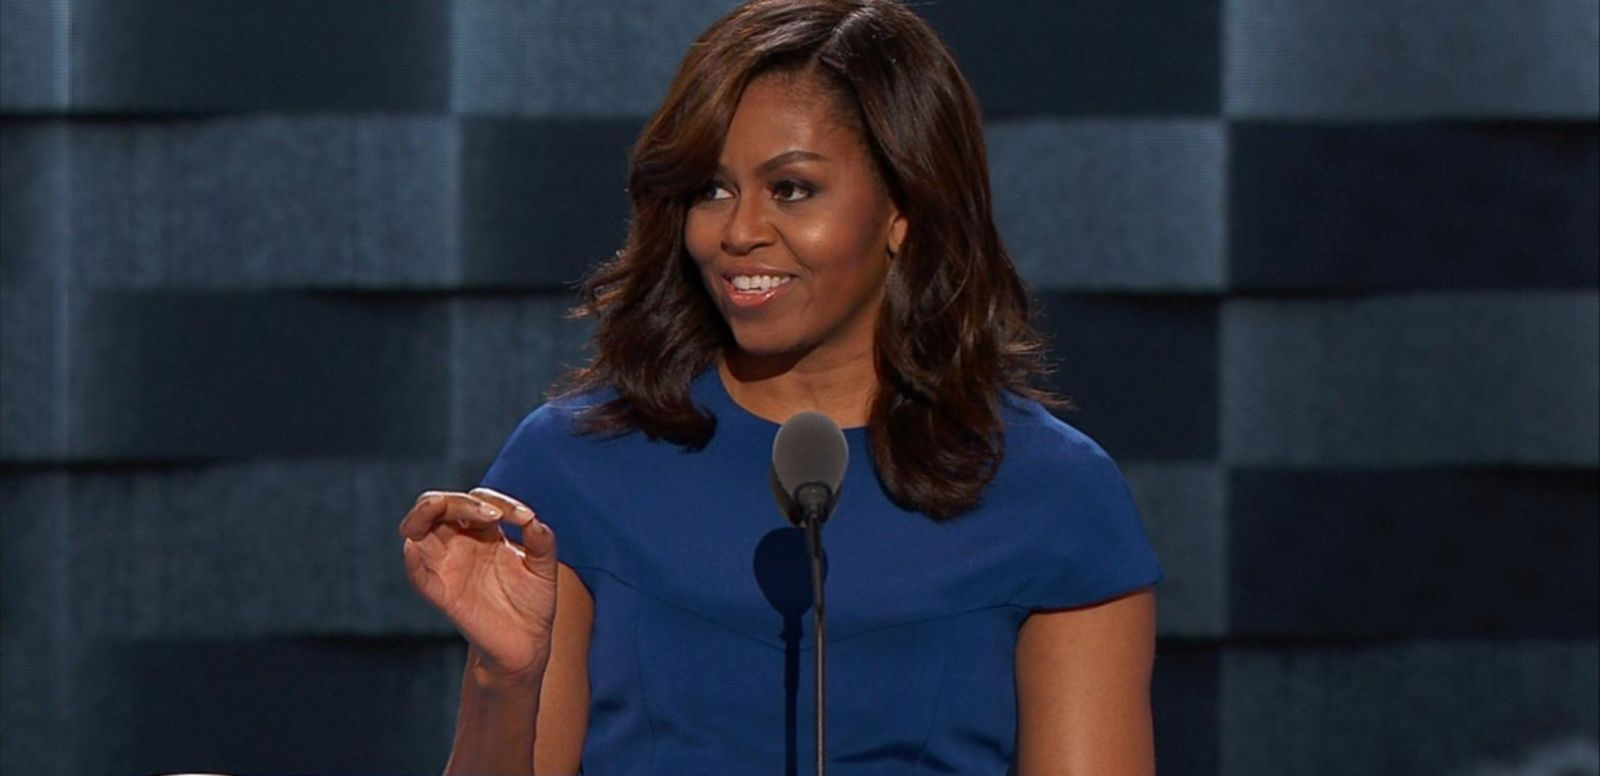 VIDEO: Michelle Obama's Speech at the Democratic National Convention